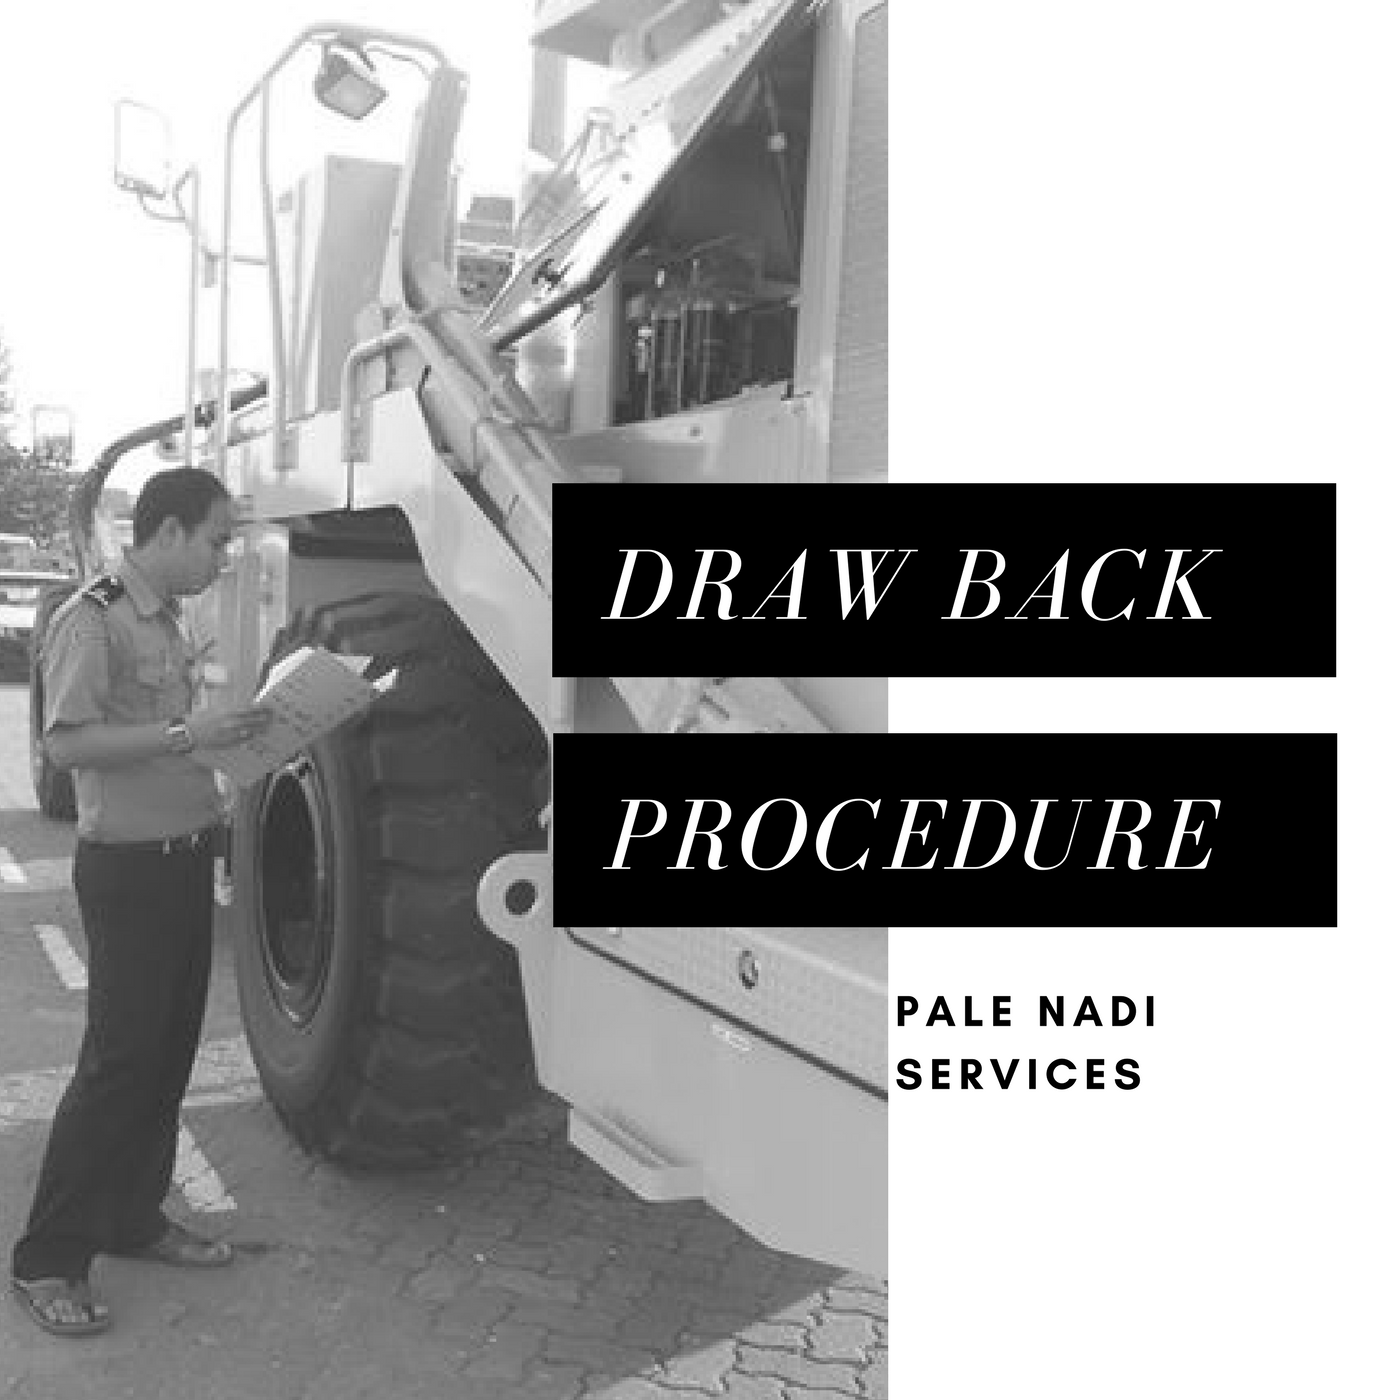 Draw Back Procedure